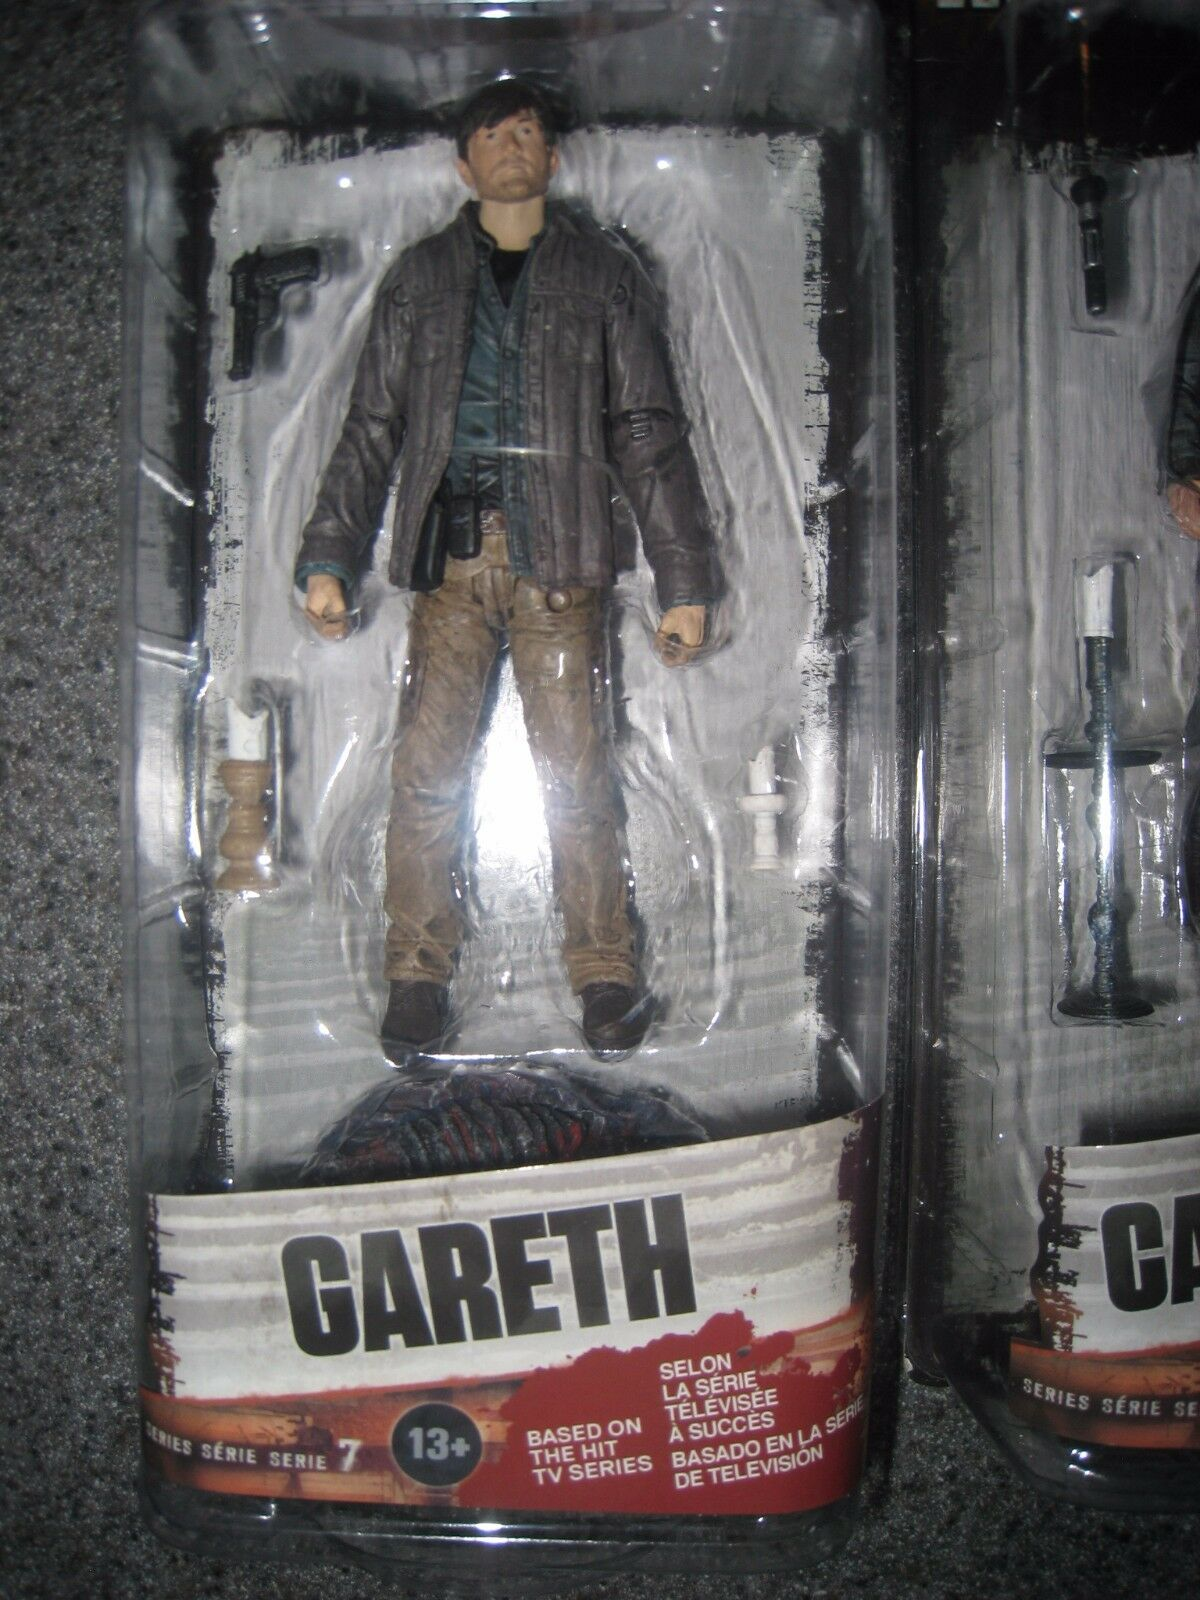 394f2ceb442 ... NIP AMC THE WALKING DEAD GRIMES GARETH CARL GRIMES DEAD MICHONNE SERIES  7 FIGURES 0366b9 ...